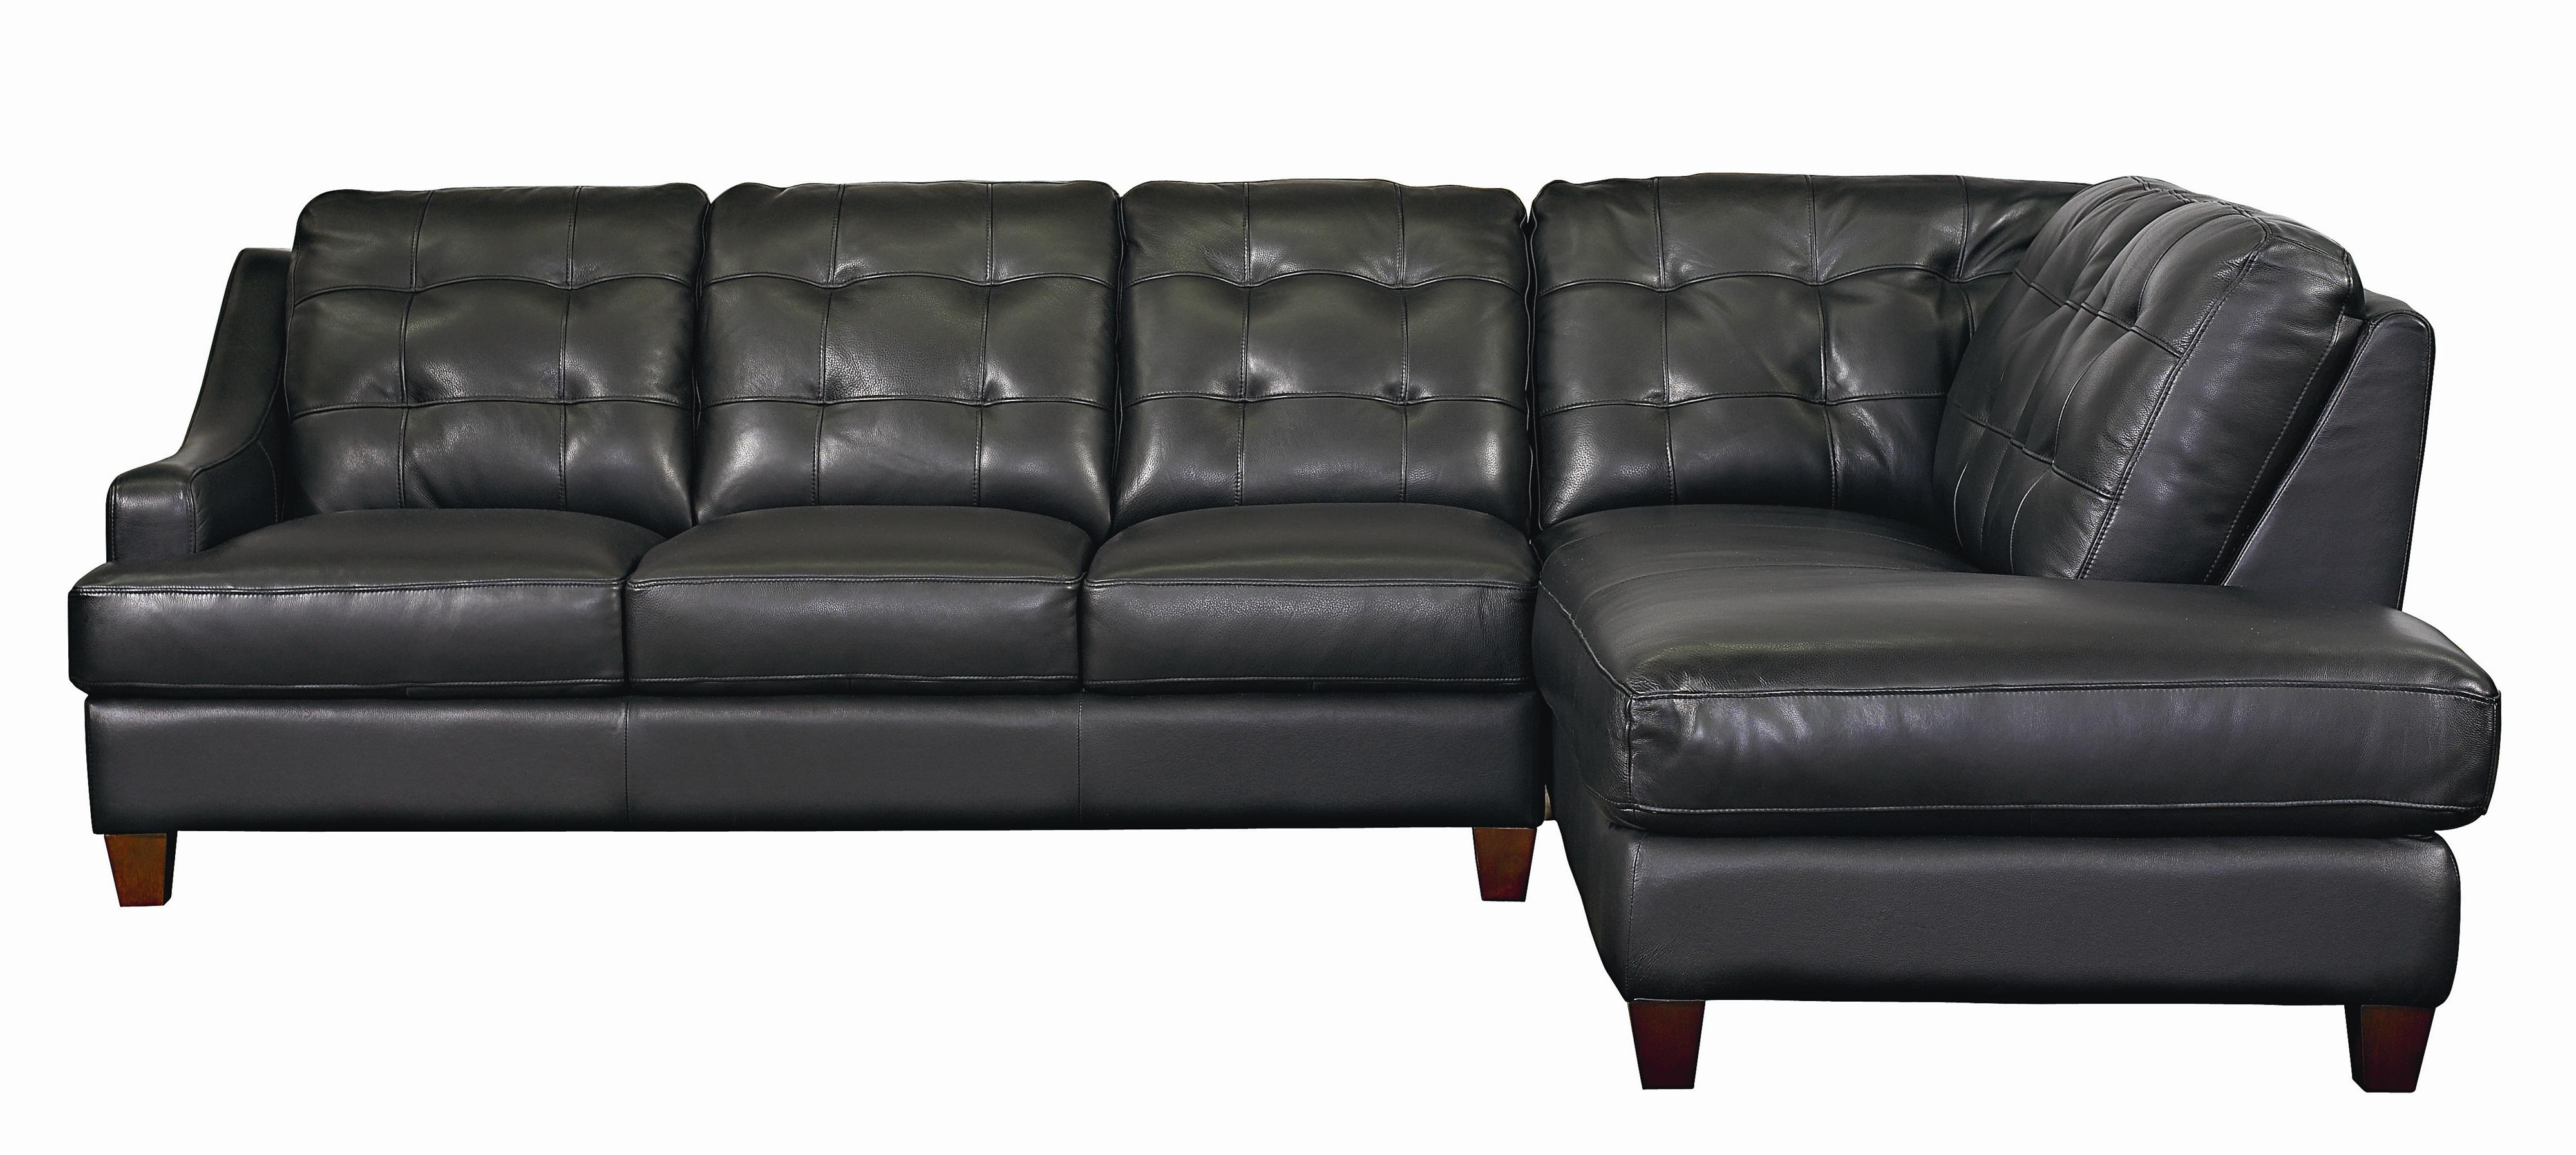 Mercer Right Chaise Leather Sectional By Bassett